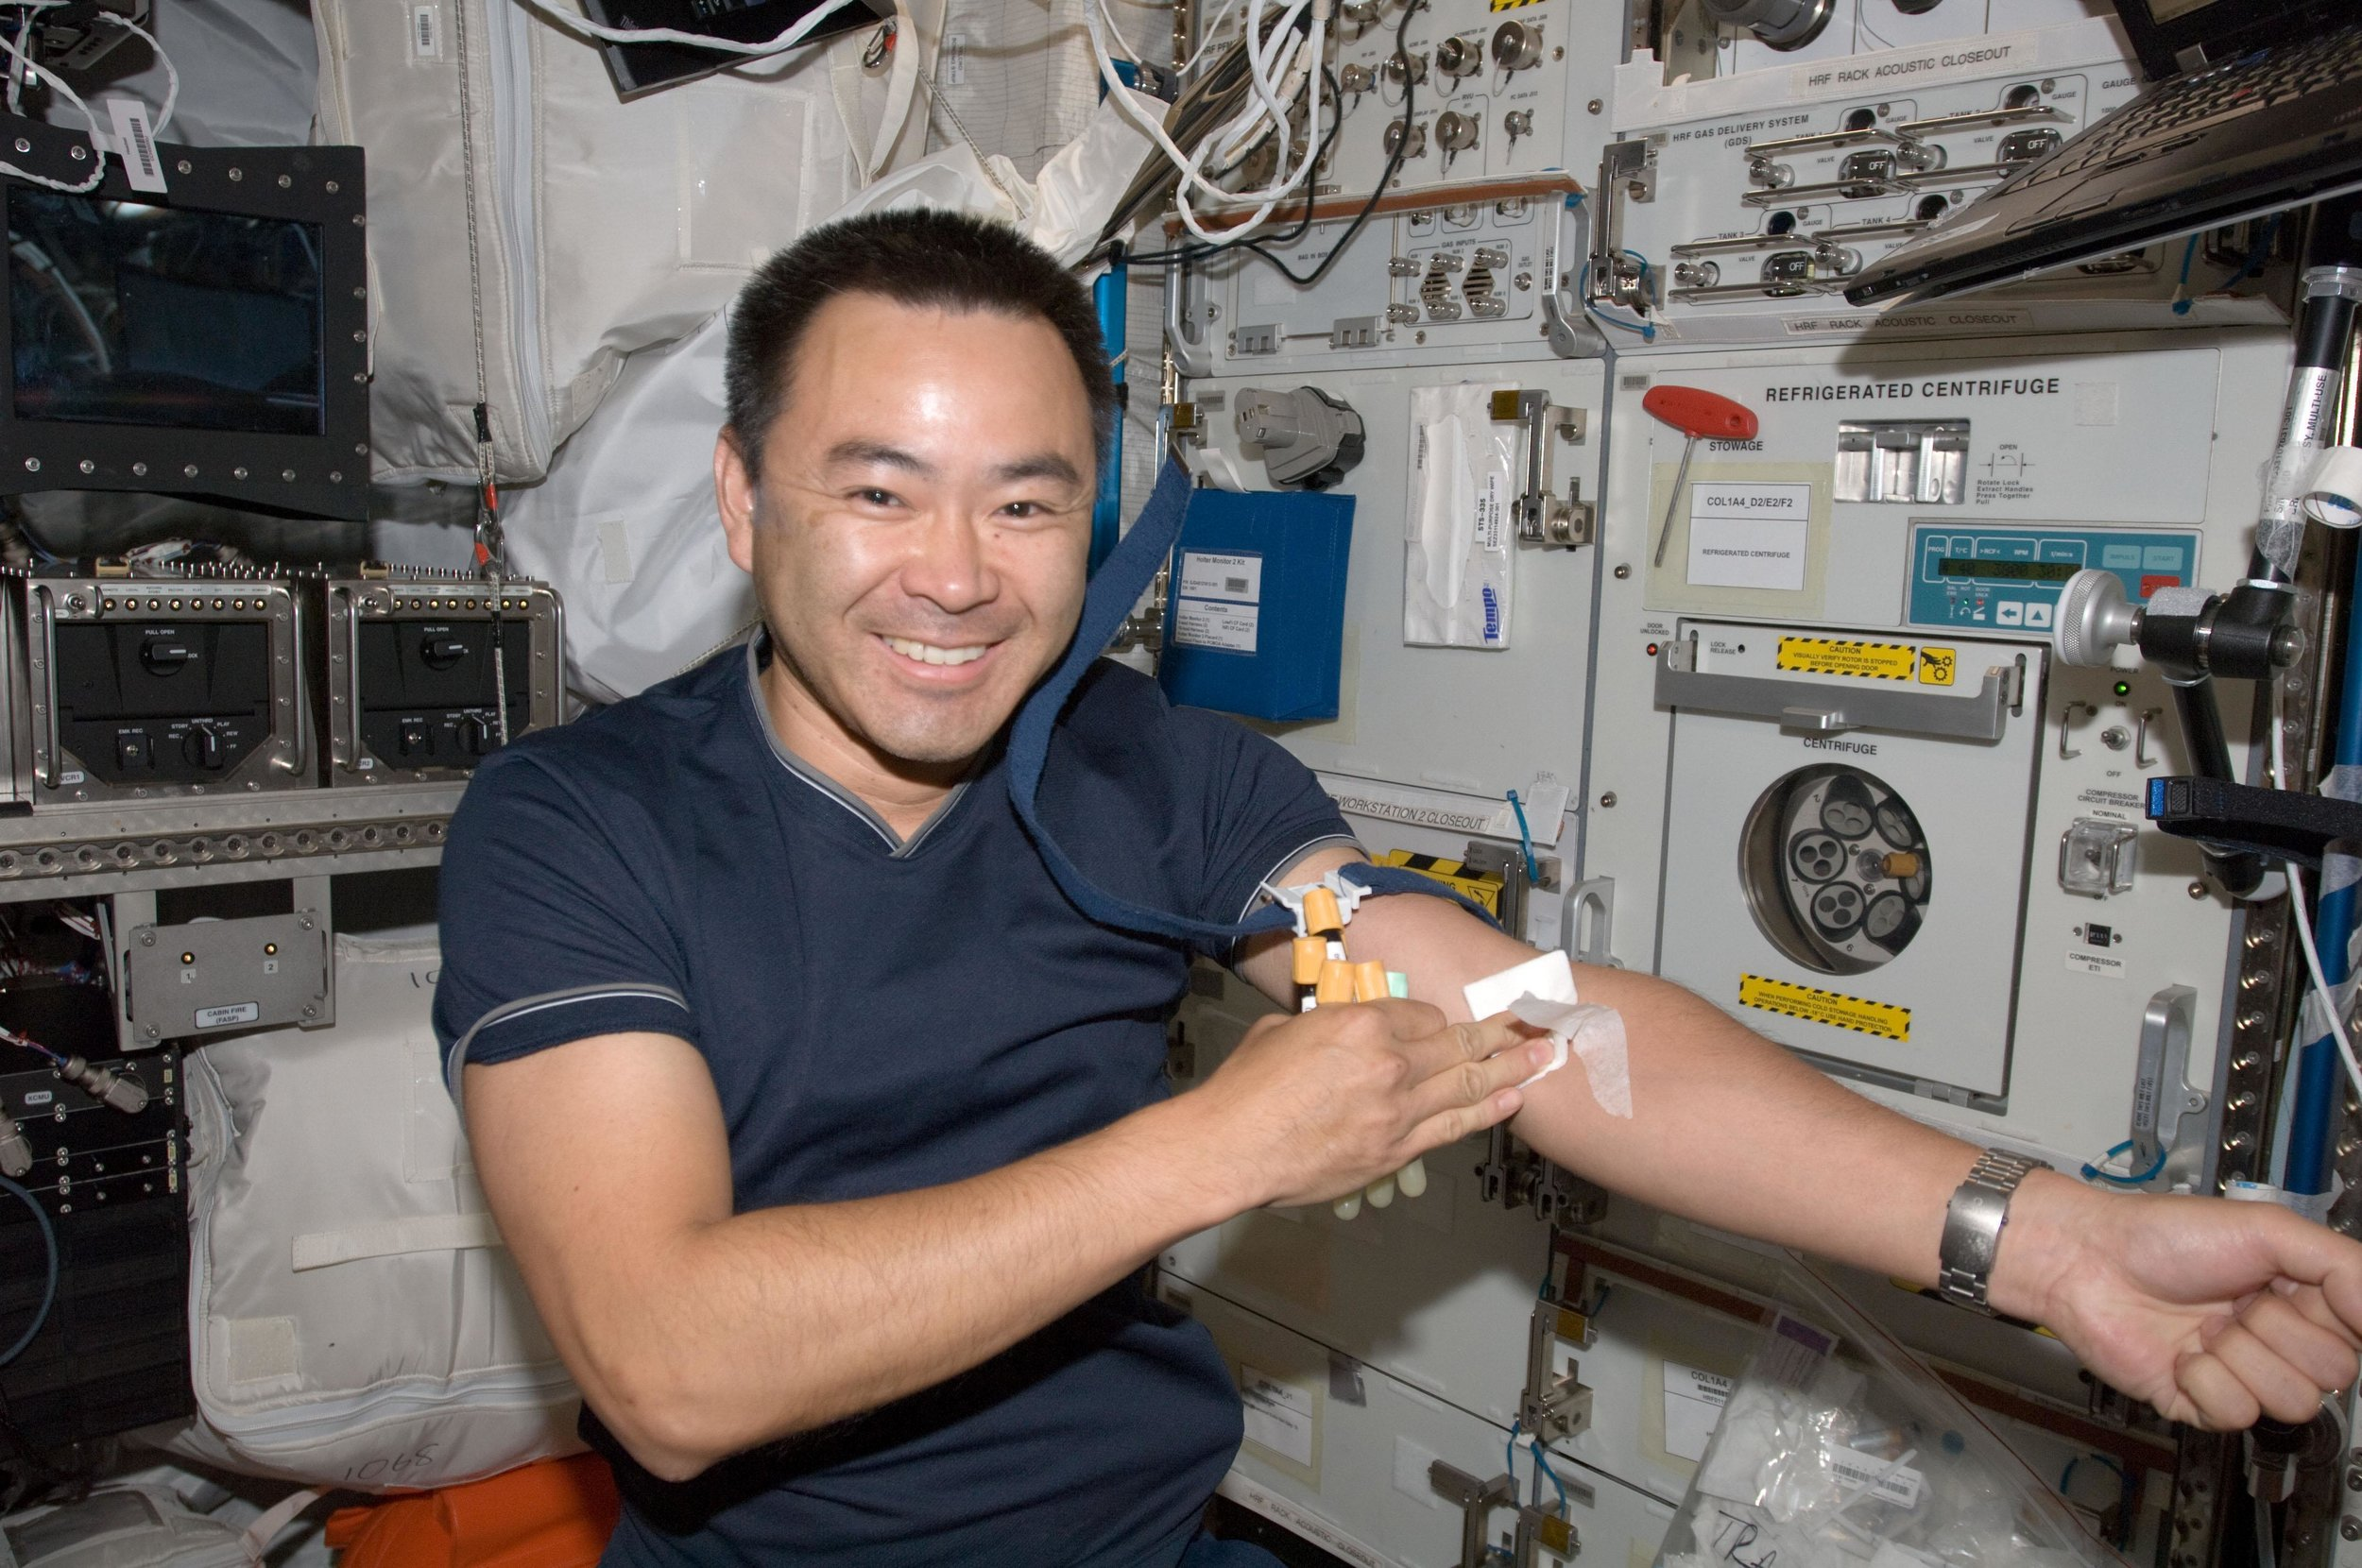 Japanese astronaut Akihiko Hoshide, a flight engineer for Expedition 32, places gauze on his harm after drawing blood for an immunological study. Photo Credit: NASA